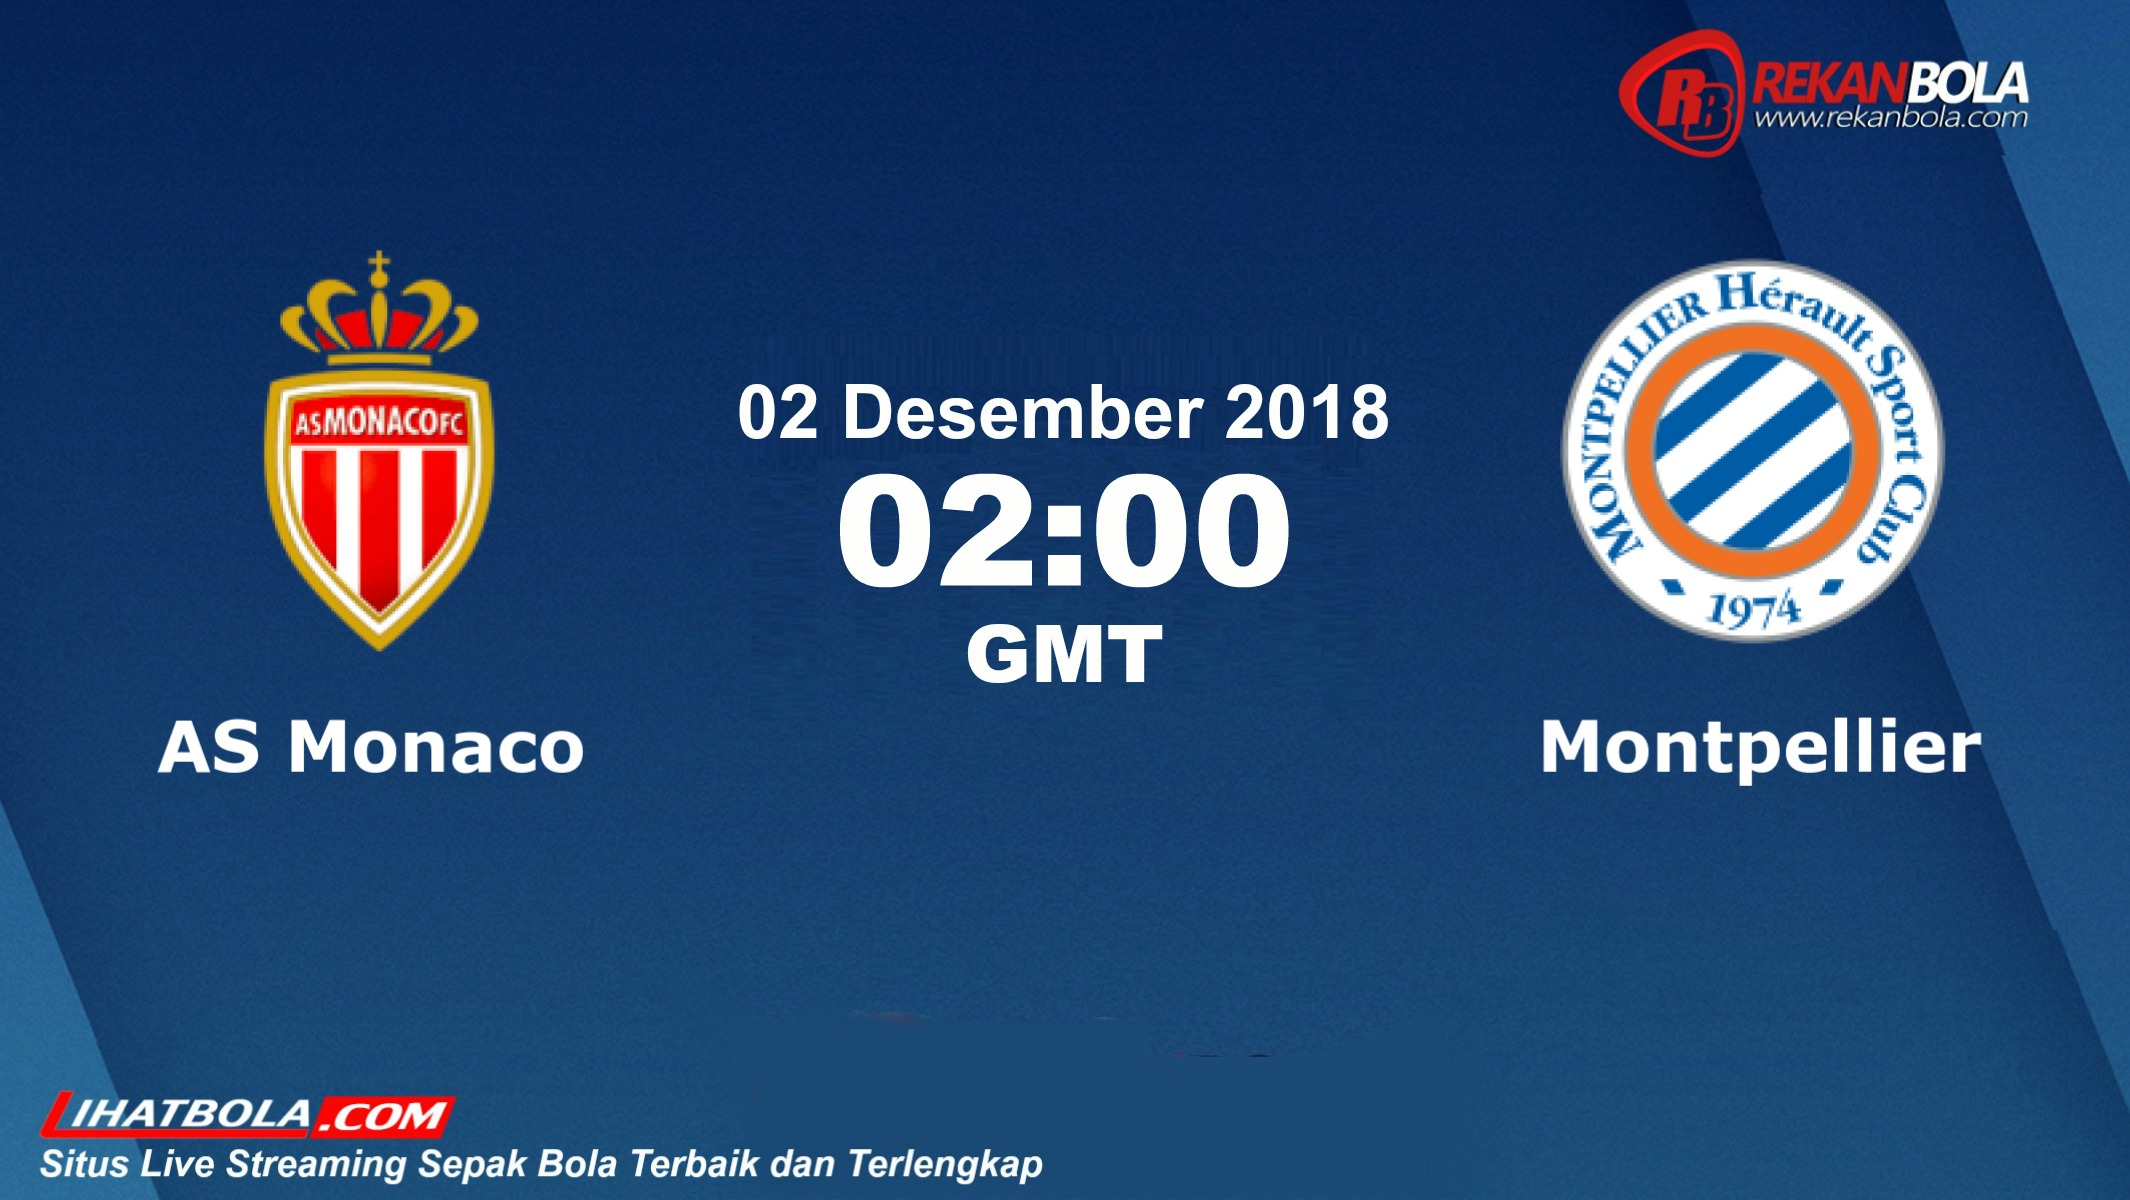 Nonton Siaran Live Streaming Monaco Vs Montpellier 02 Desember 2018